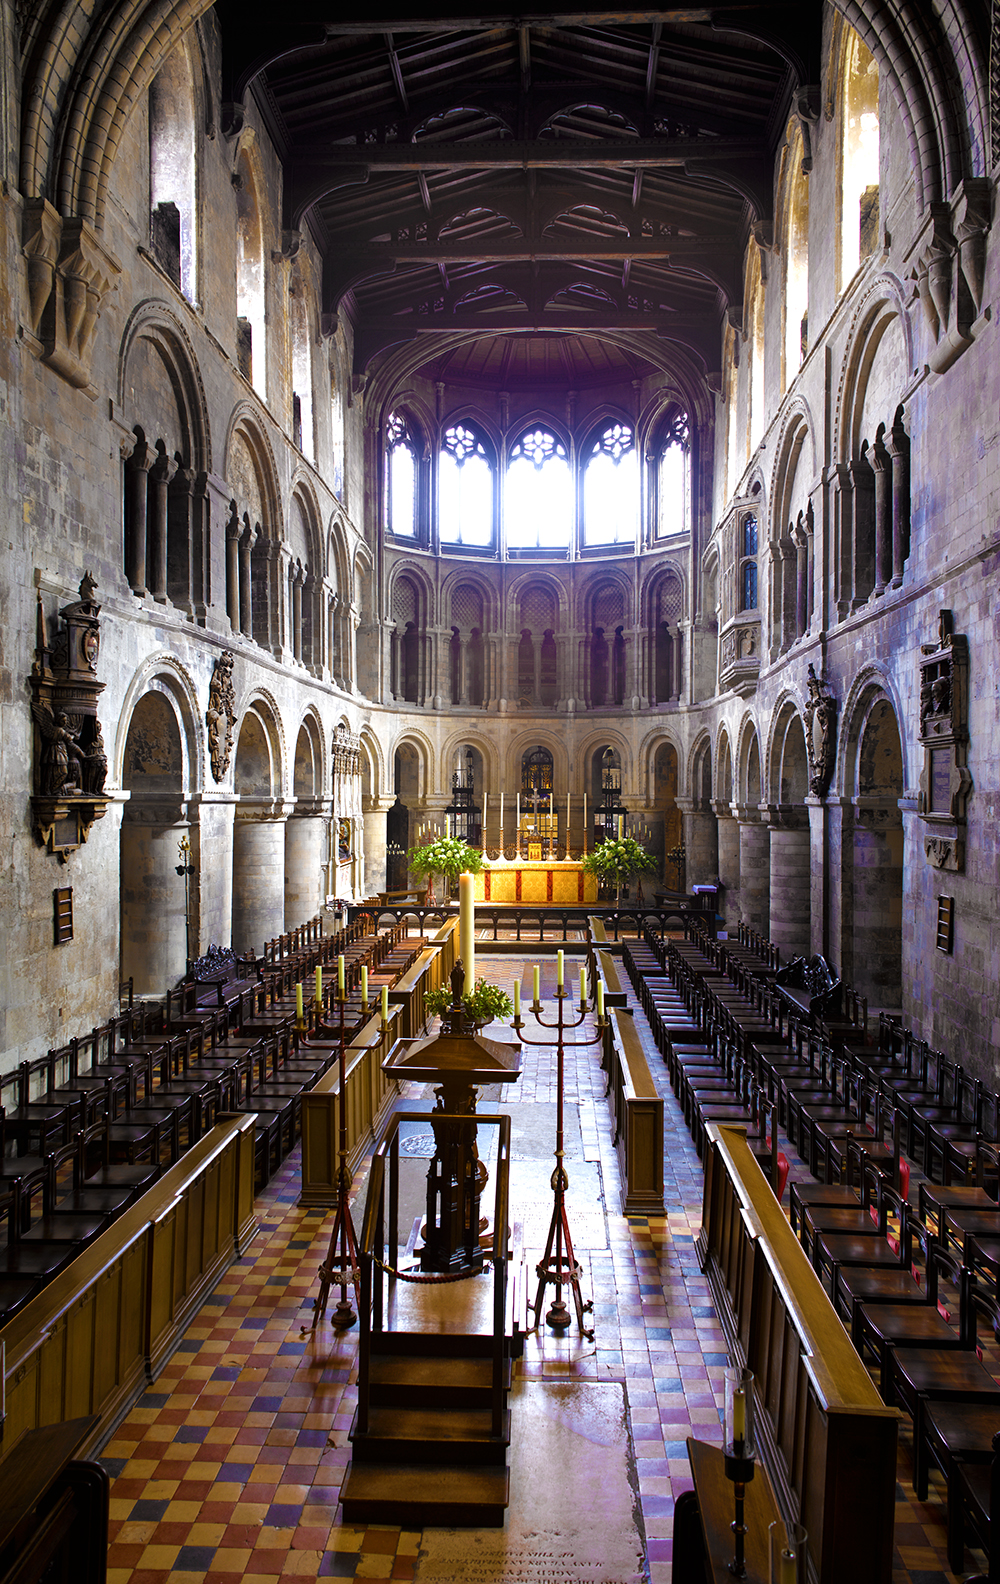 Saint Bartholomew the Great - The oldest Church in London